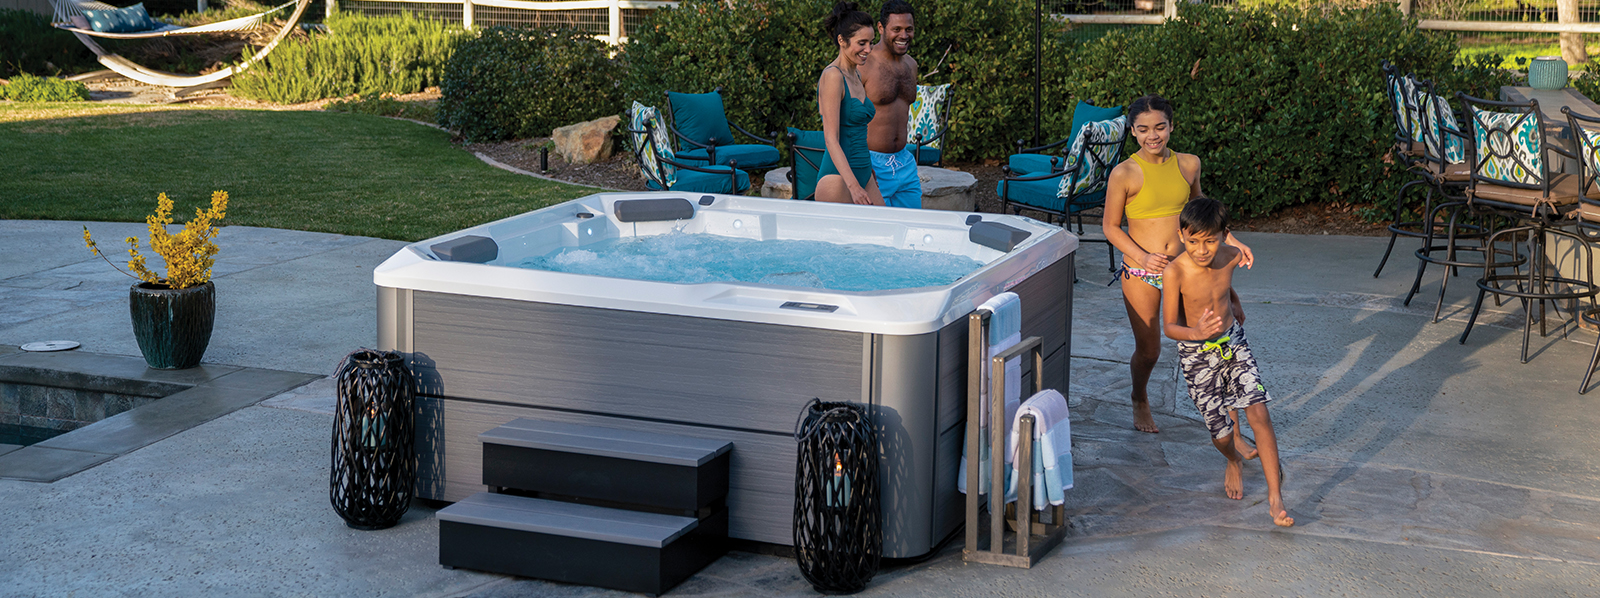 hot_spring_hot_spot_relay_2020_alpinewhite_storm_lifestyle_family_afternoon_03_1600x598_eh6q7k